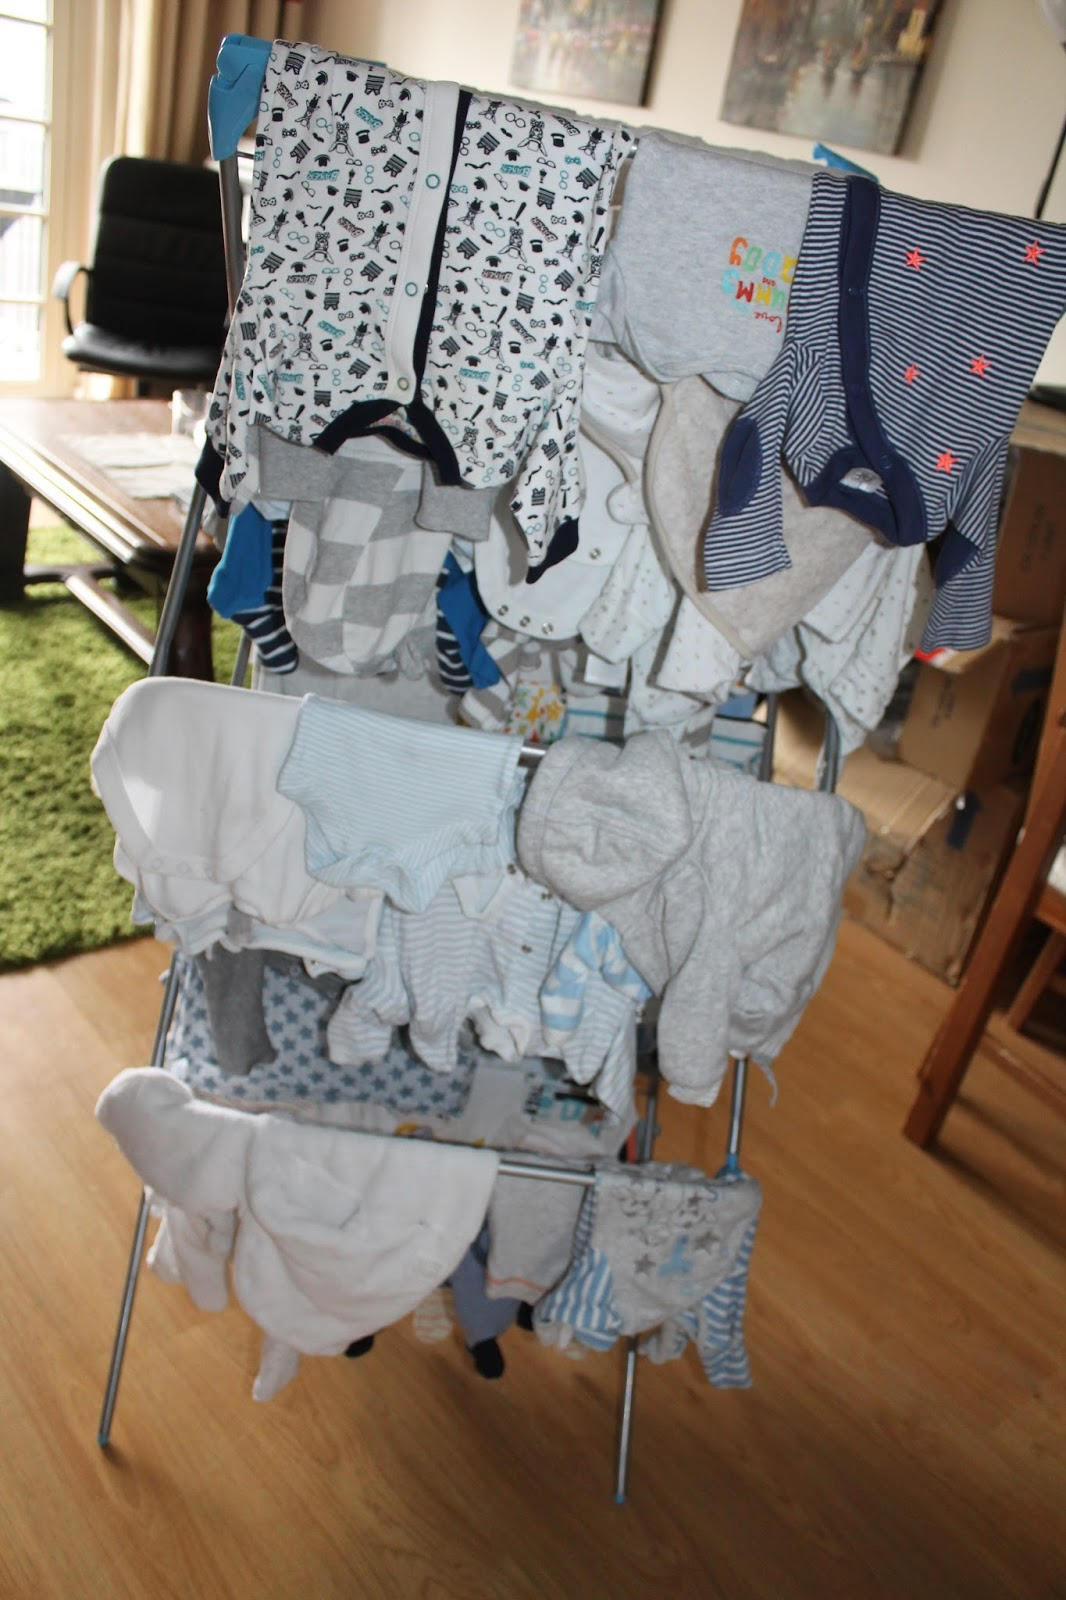 Washing Baby Clothes Round 2 & Moving Daniella to Sister s